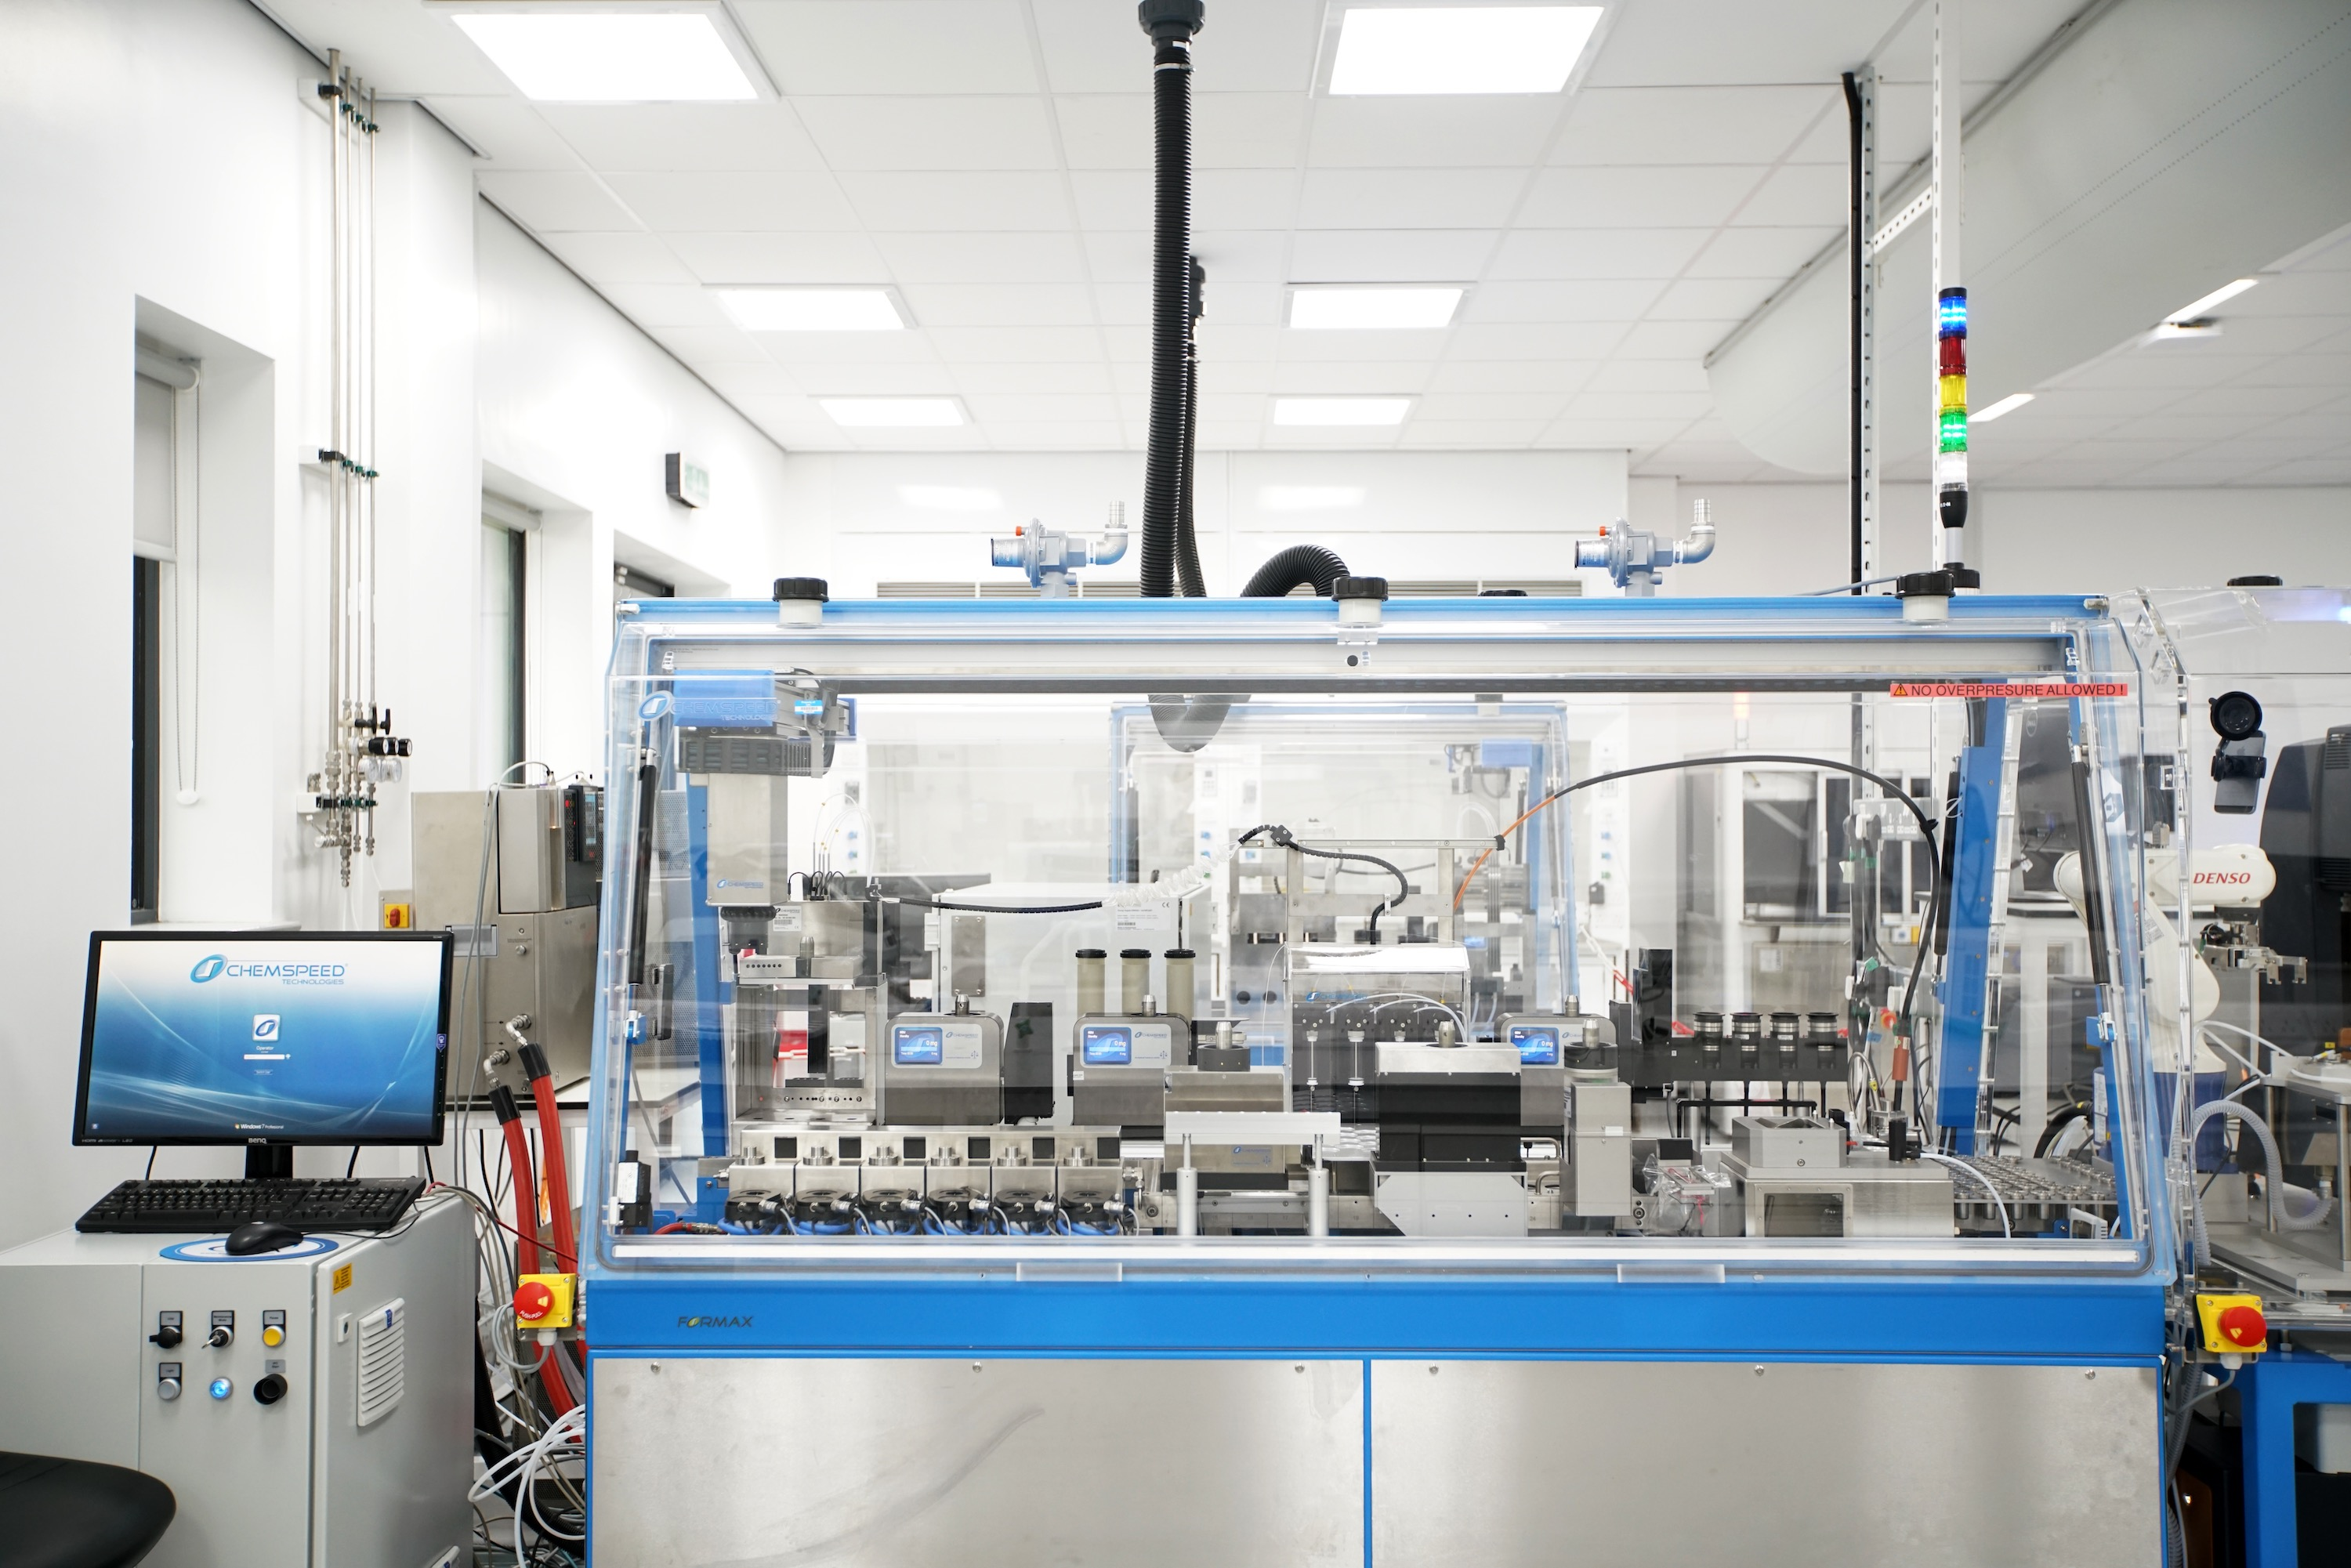 Innovative nanomaterial and composite manufacturing equipment